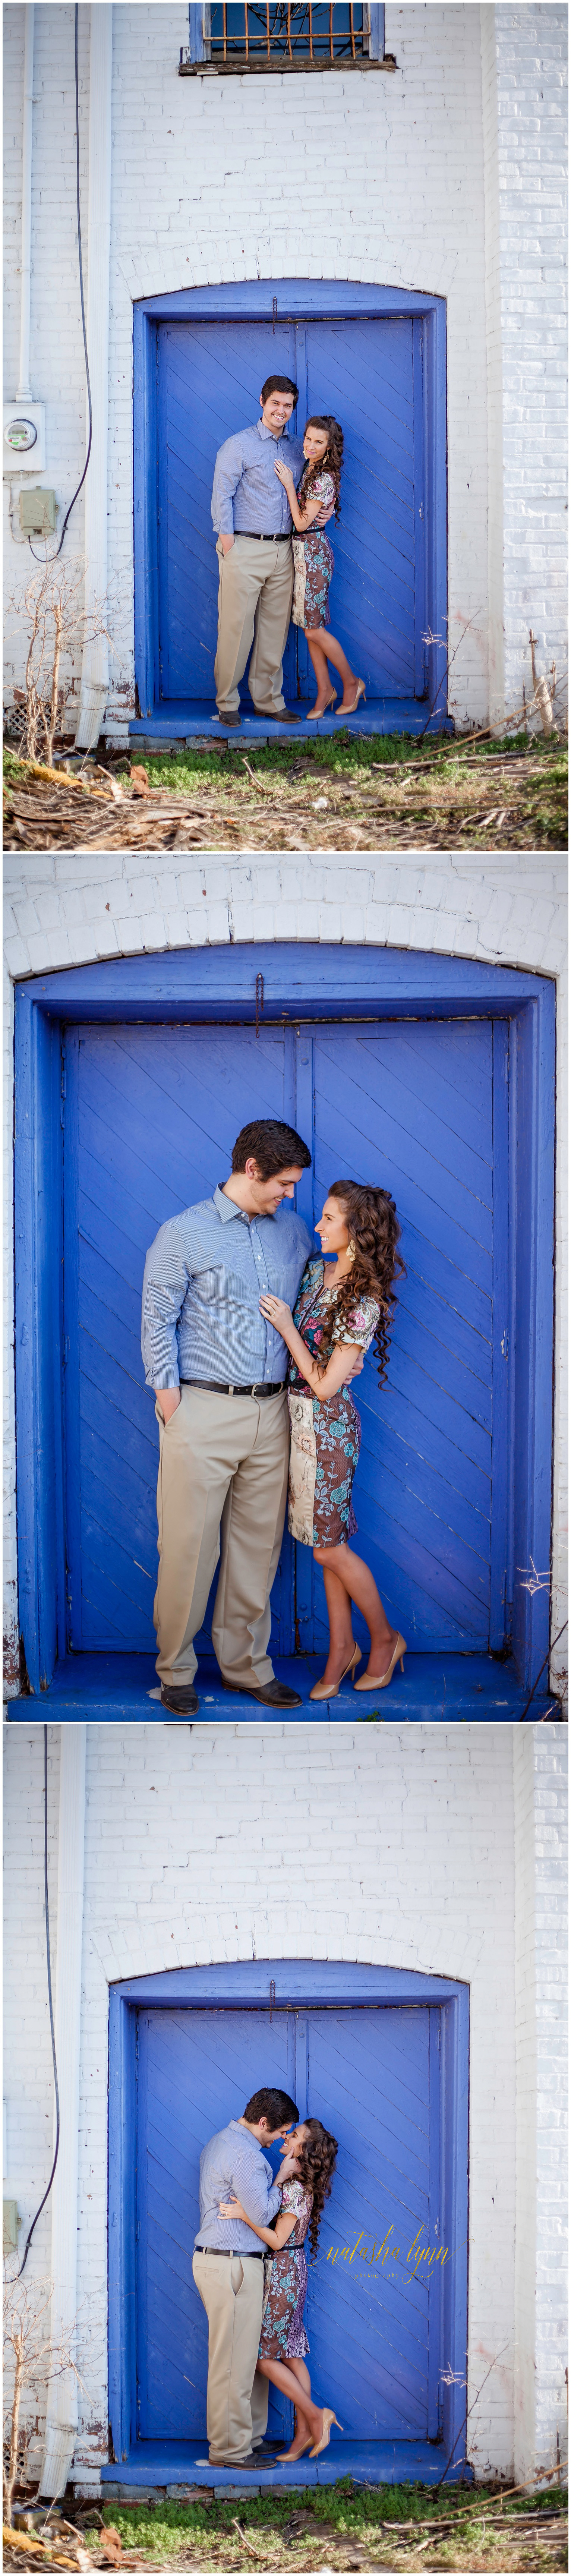 Wilkes+County+Engagement+Photographer_4.jpg